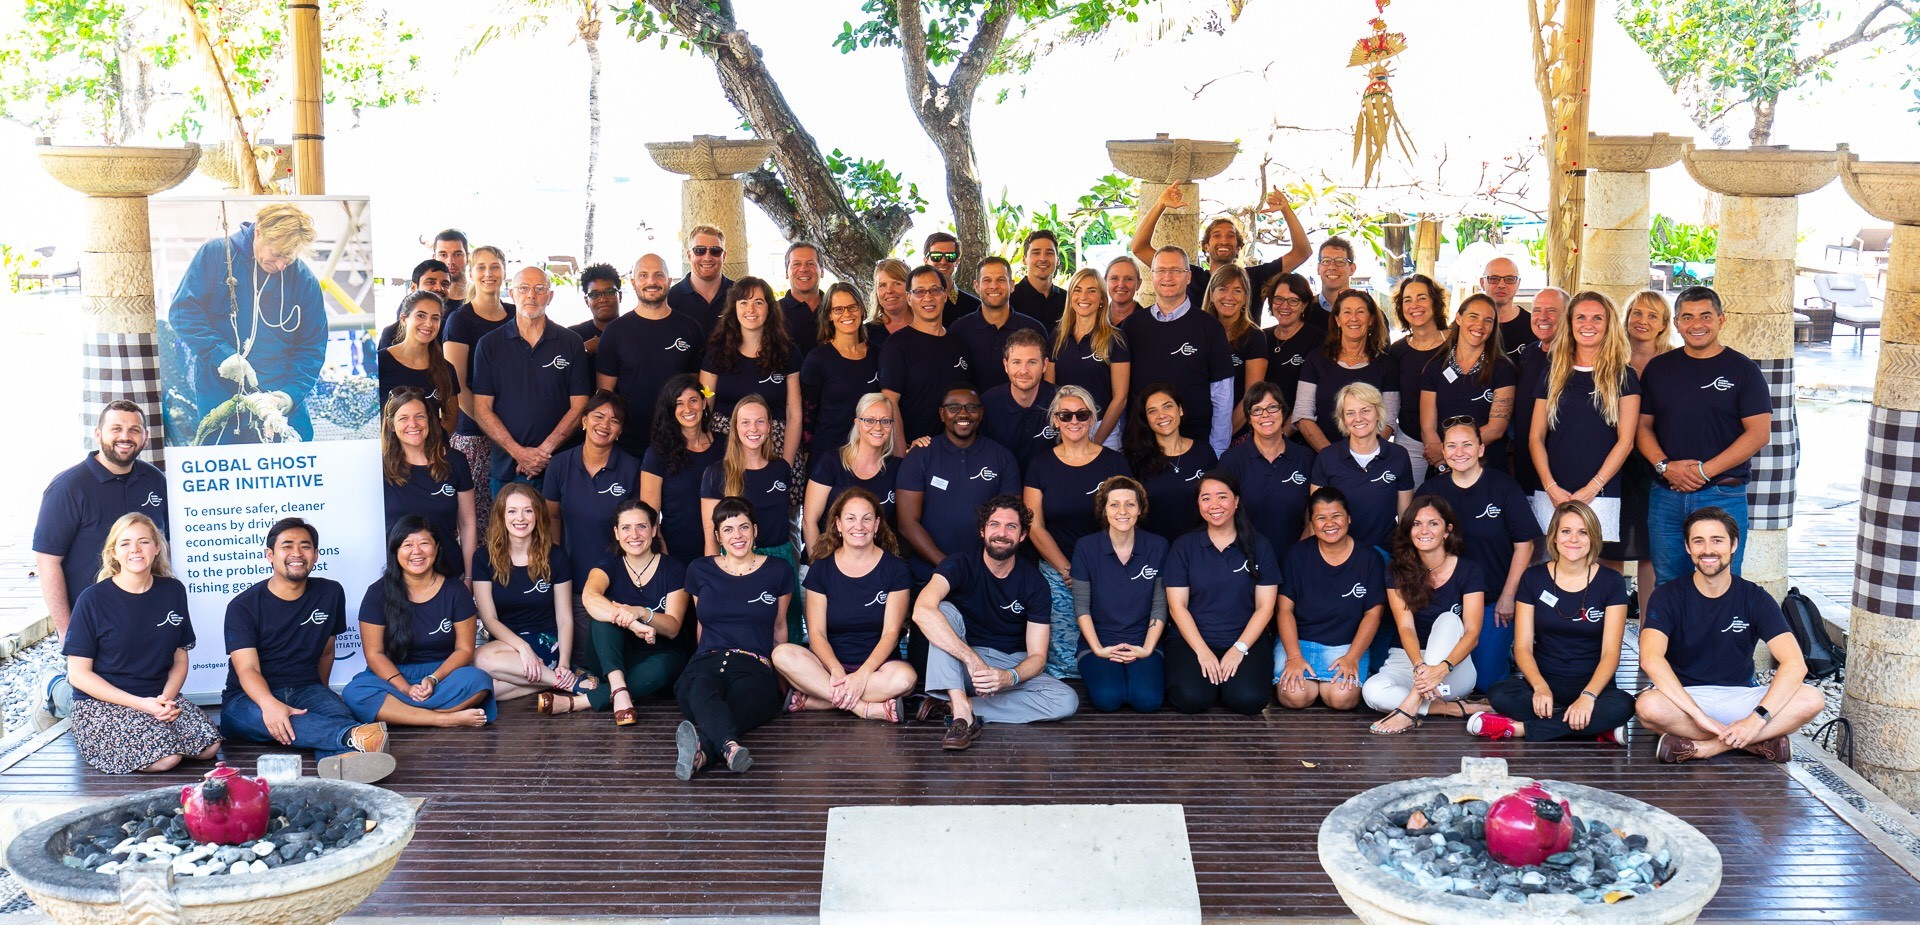 Attendees at the Global Ghost Gear Initiative AGM in Bali in October 2018